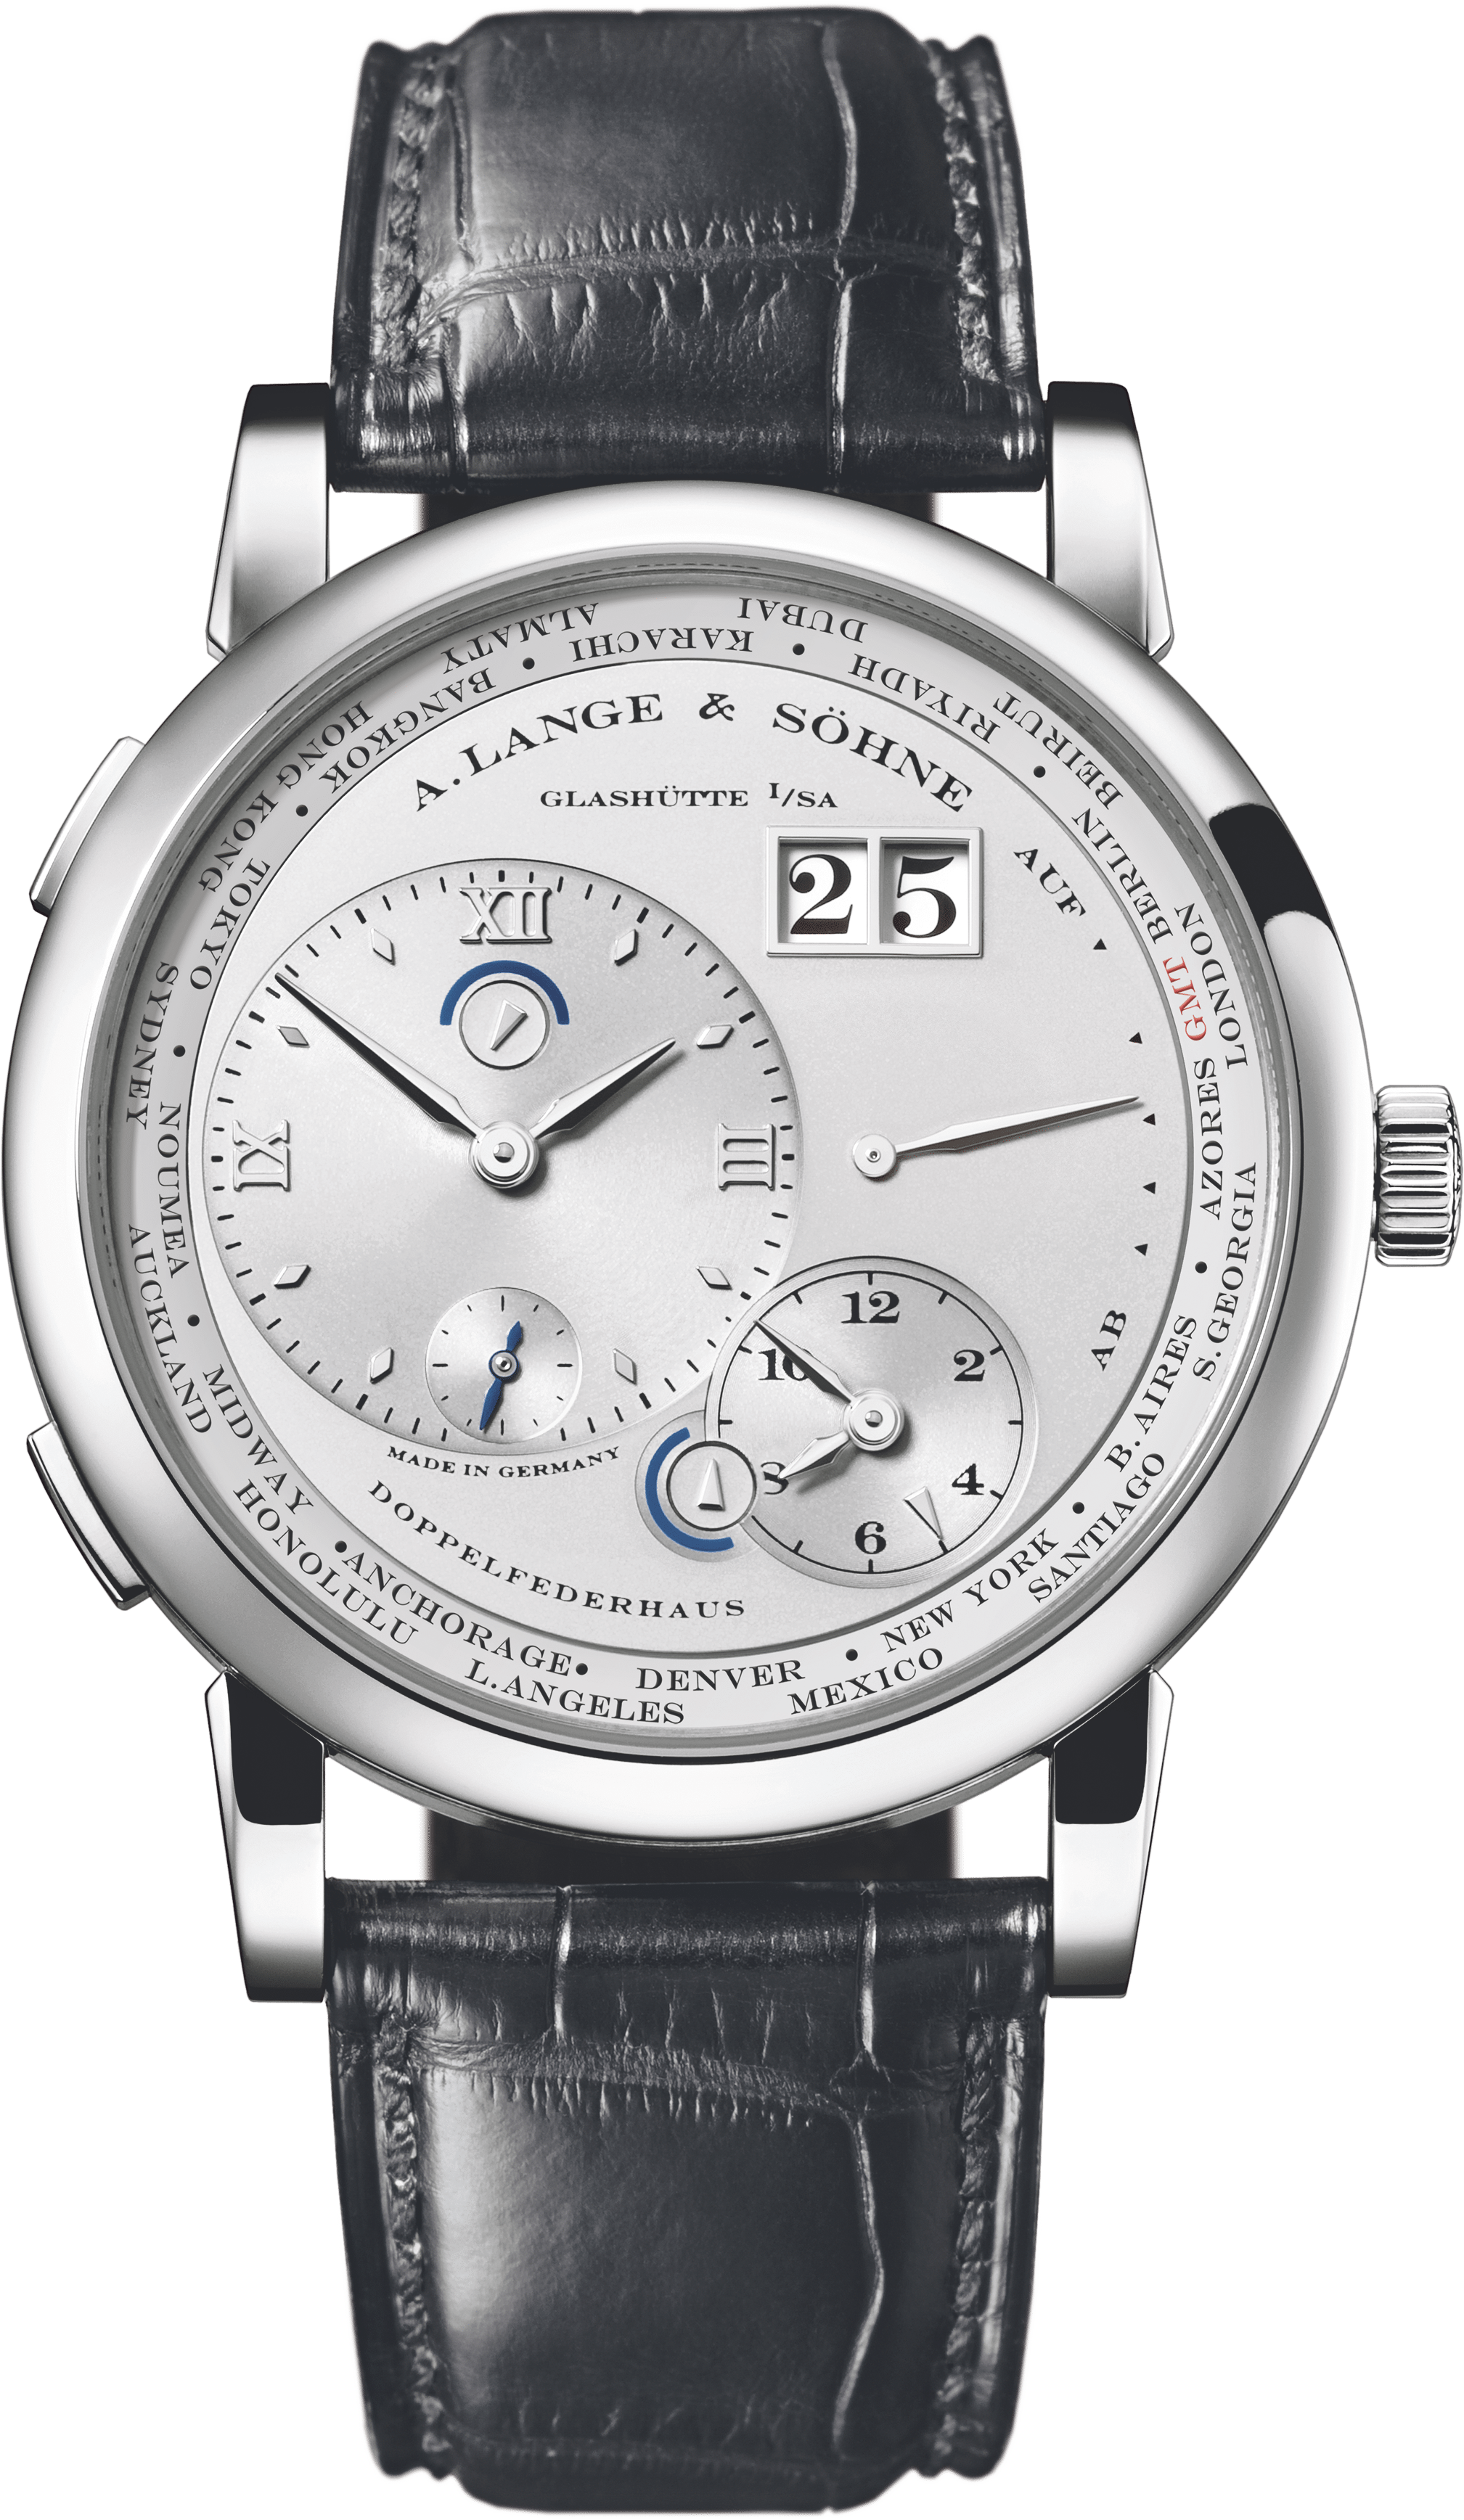 Watch Replica Swiss Movement